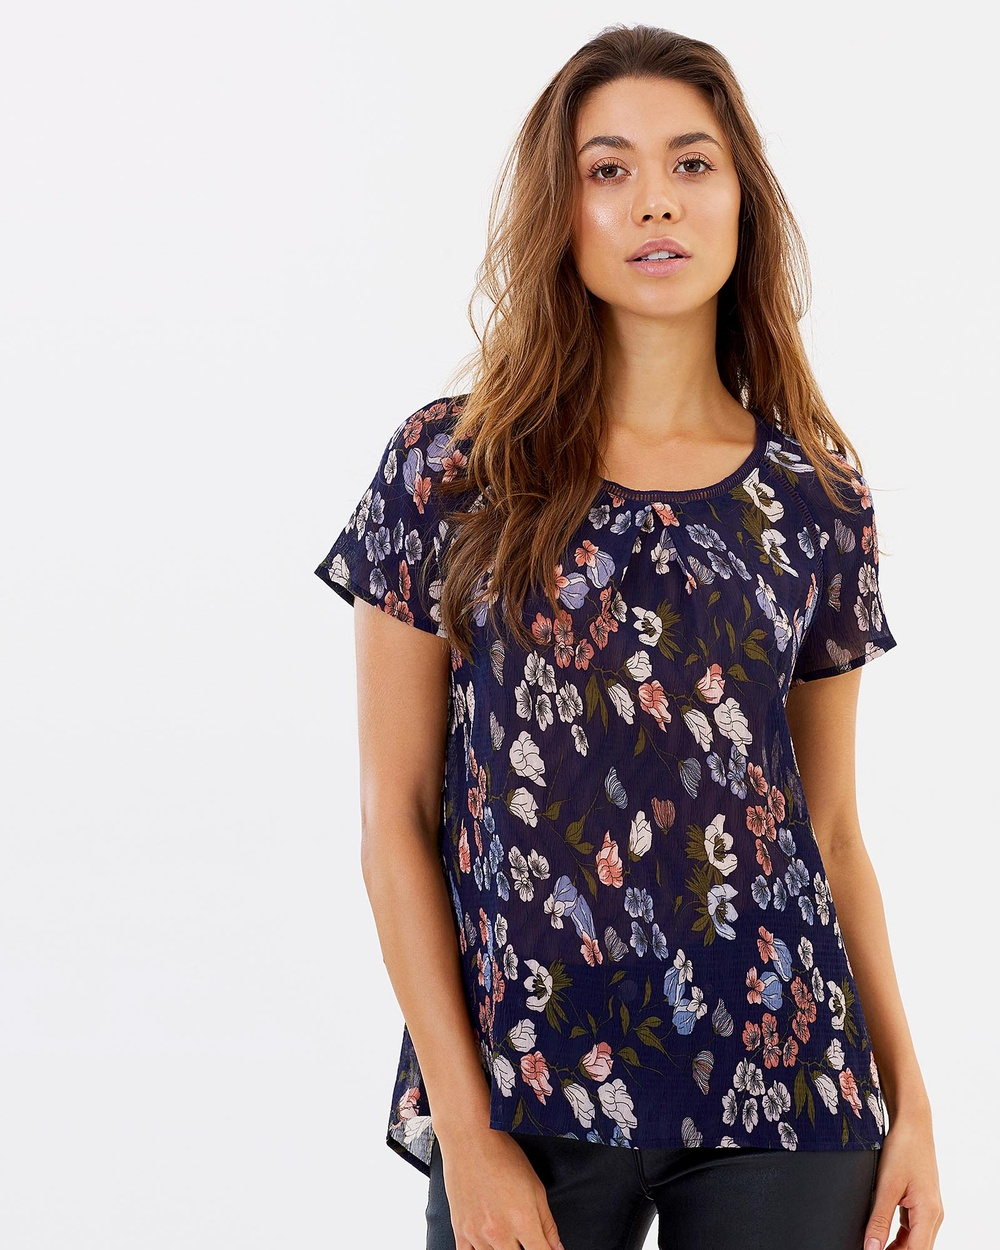 Privilege Petal Party Flare Sleeve Top Tops Navy Floral Petal Party Flare Sleeve Top